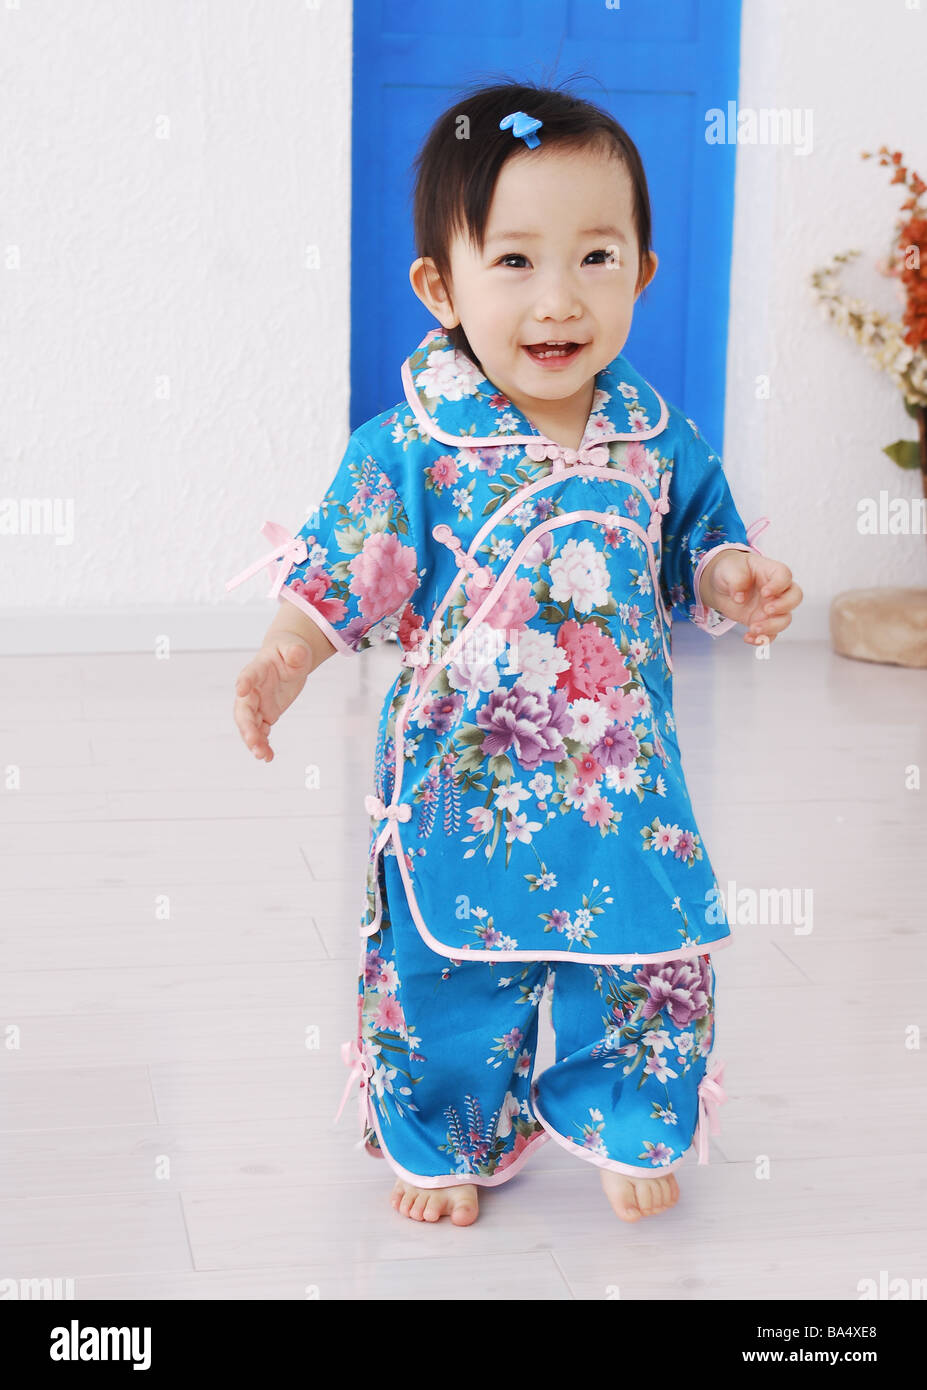 cd994bbe6954 Cute Chinese baby girl in traditional dress Stock Photo  23465520 ...